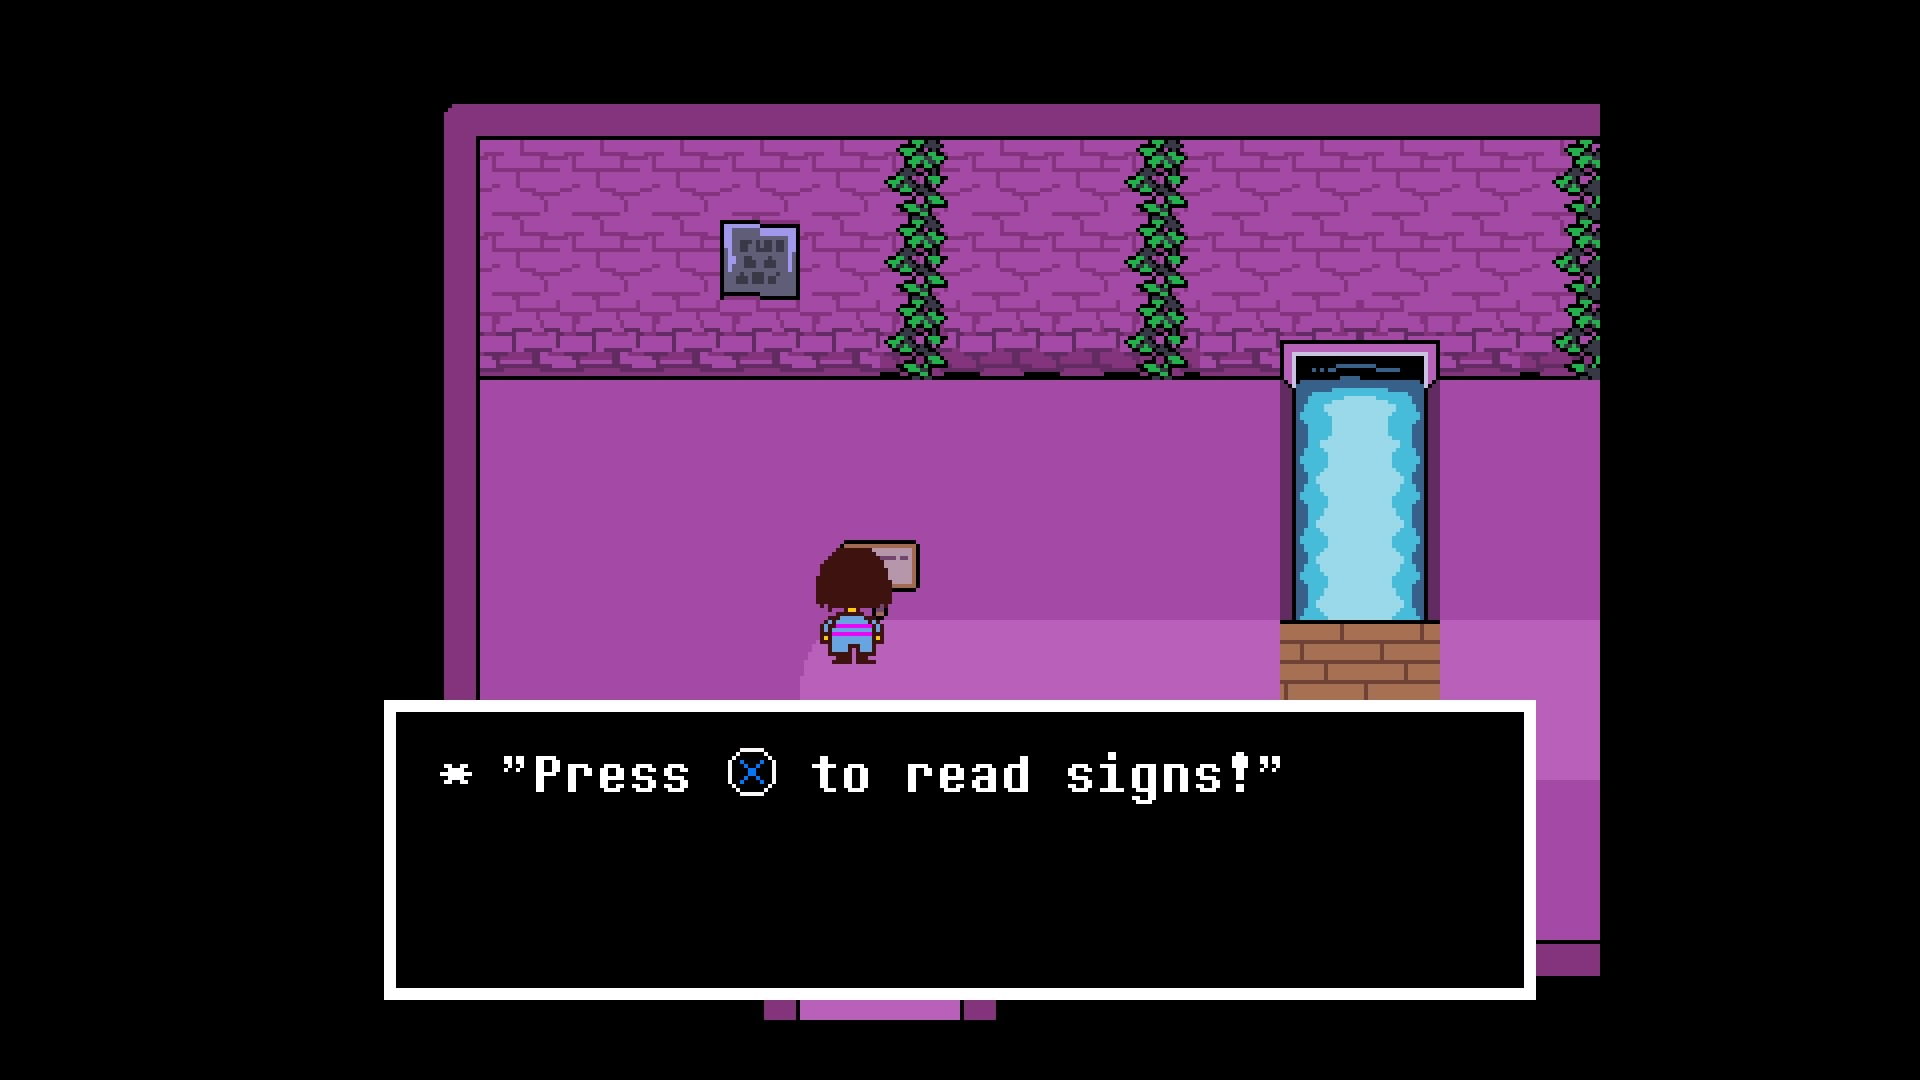 Undertale press X